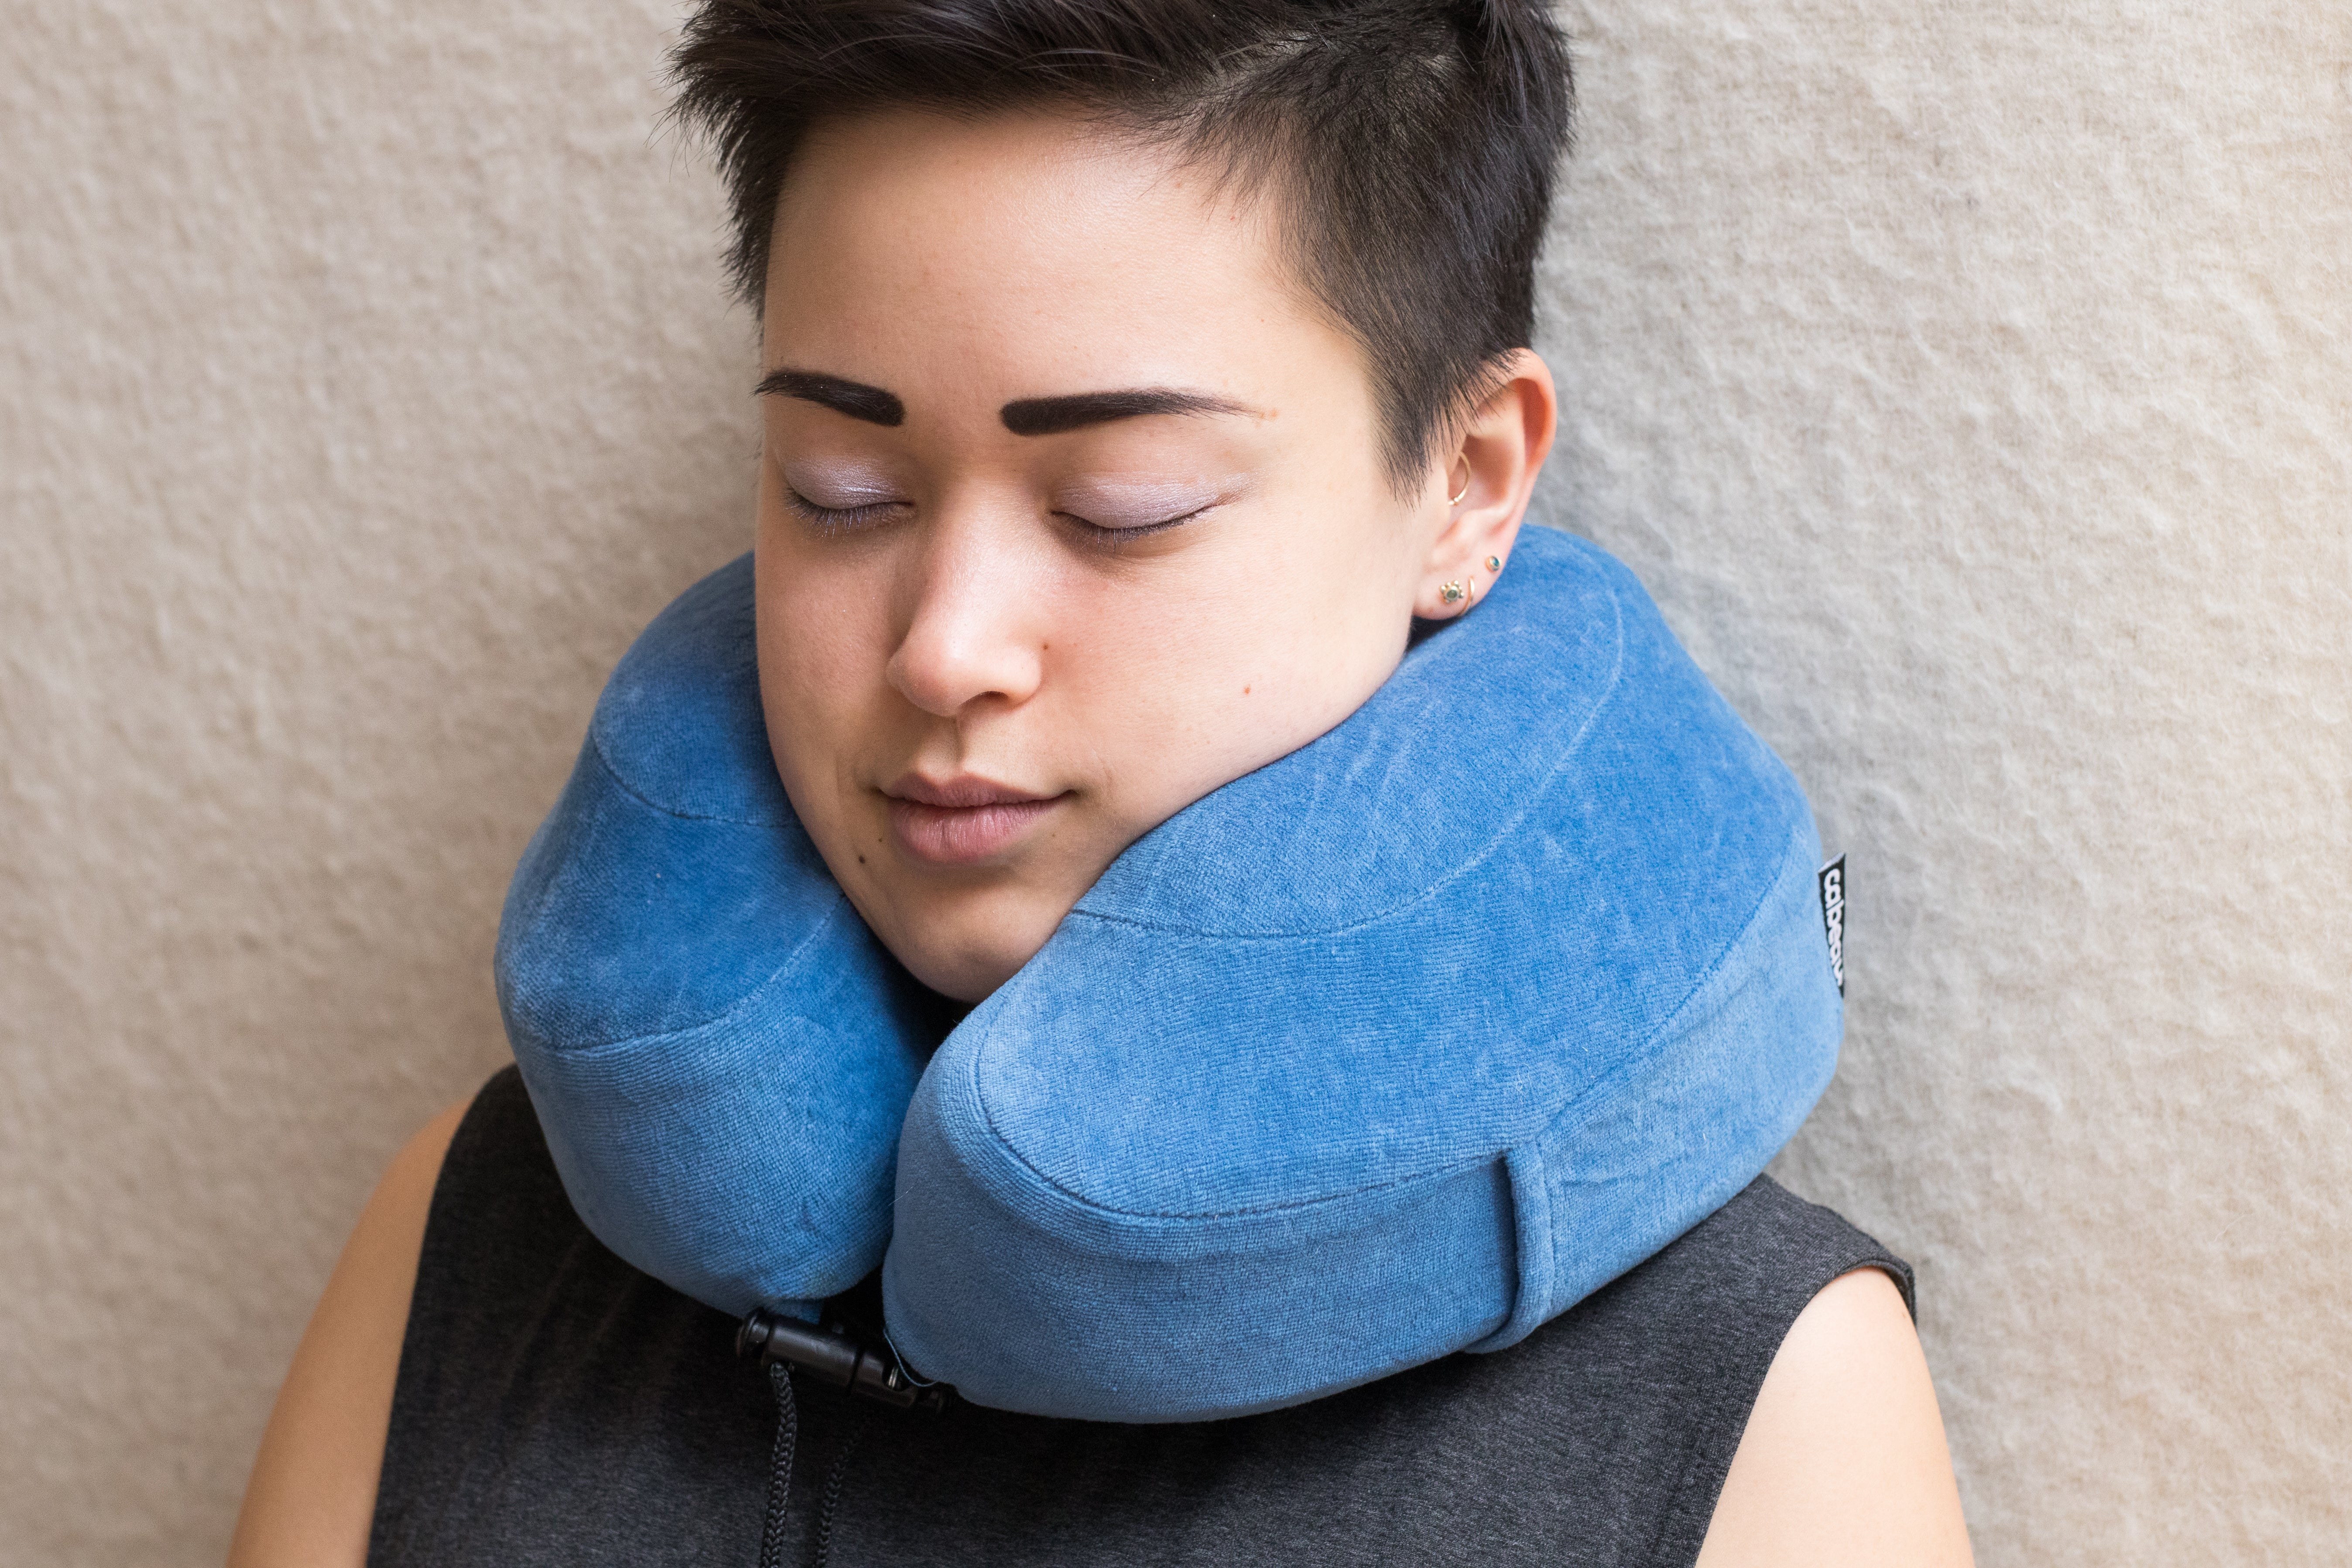 Woman wearing the Cabeau Evolution Pillow.